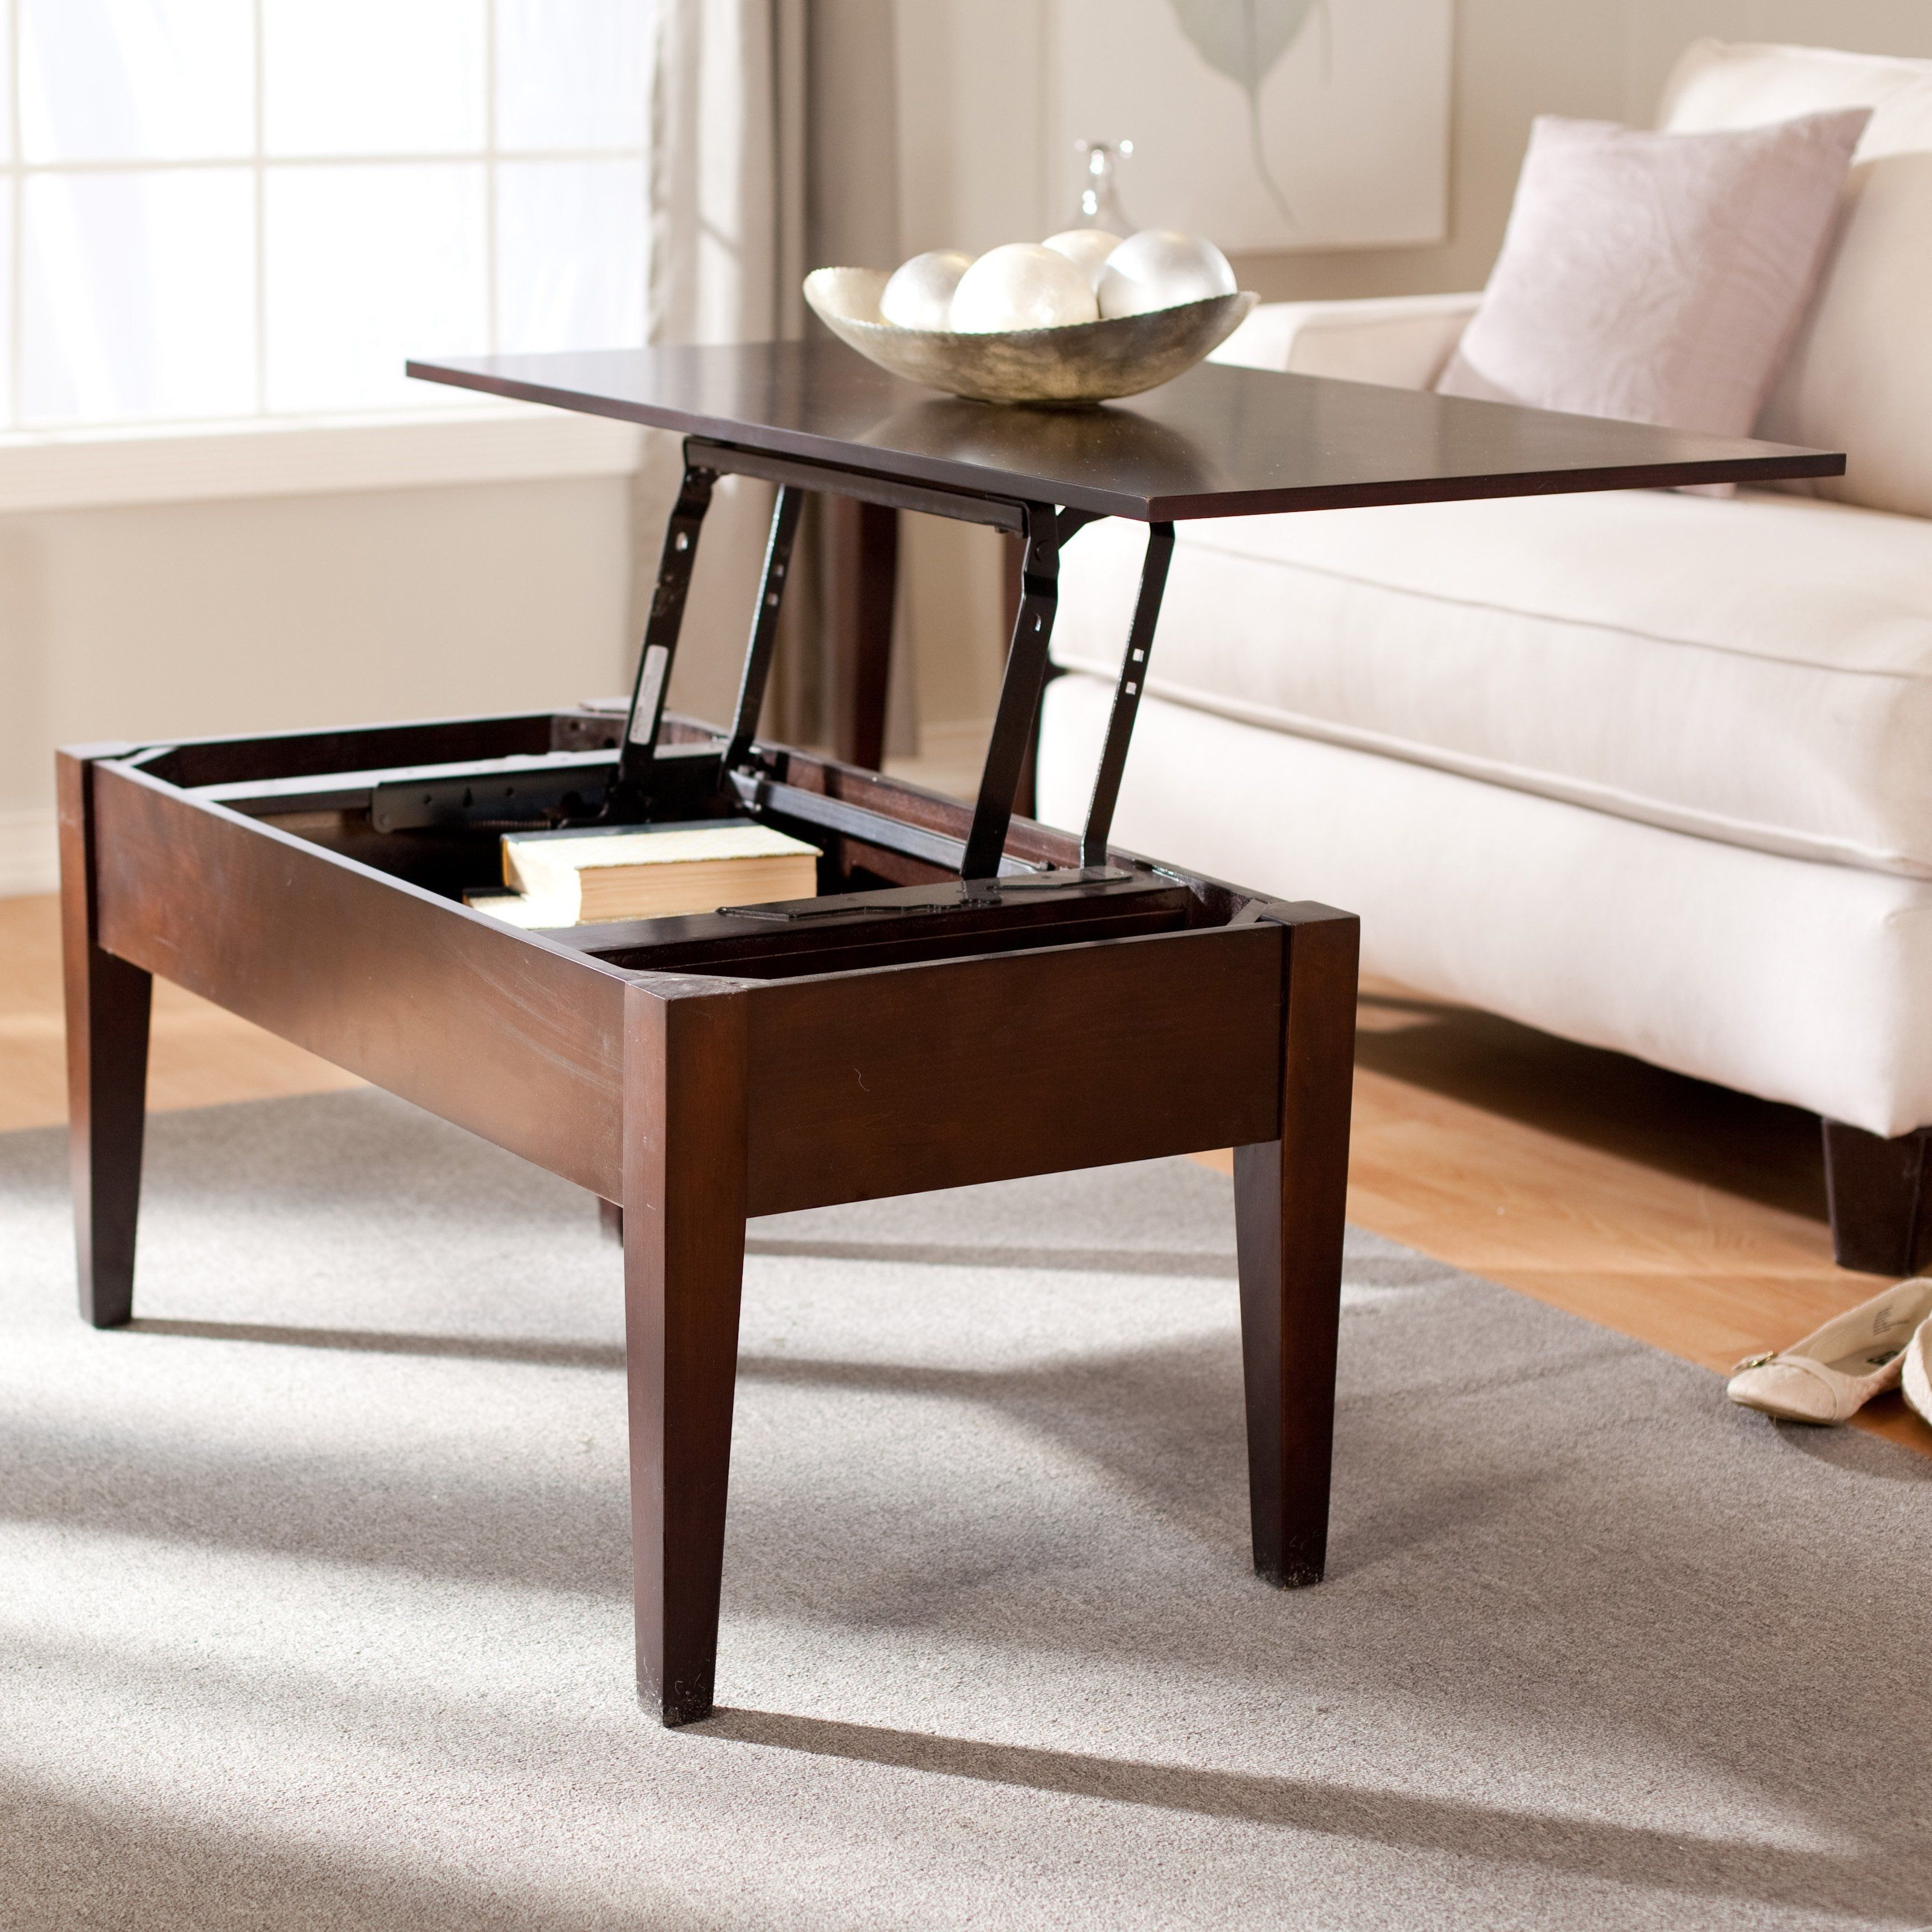 Turner Lift Top Coffee Table Black Collection Turner Lift Top Espresso Finish Wood Coffee Tab